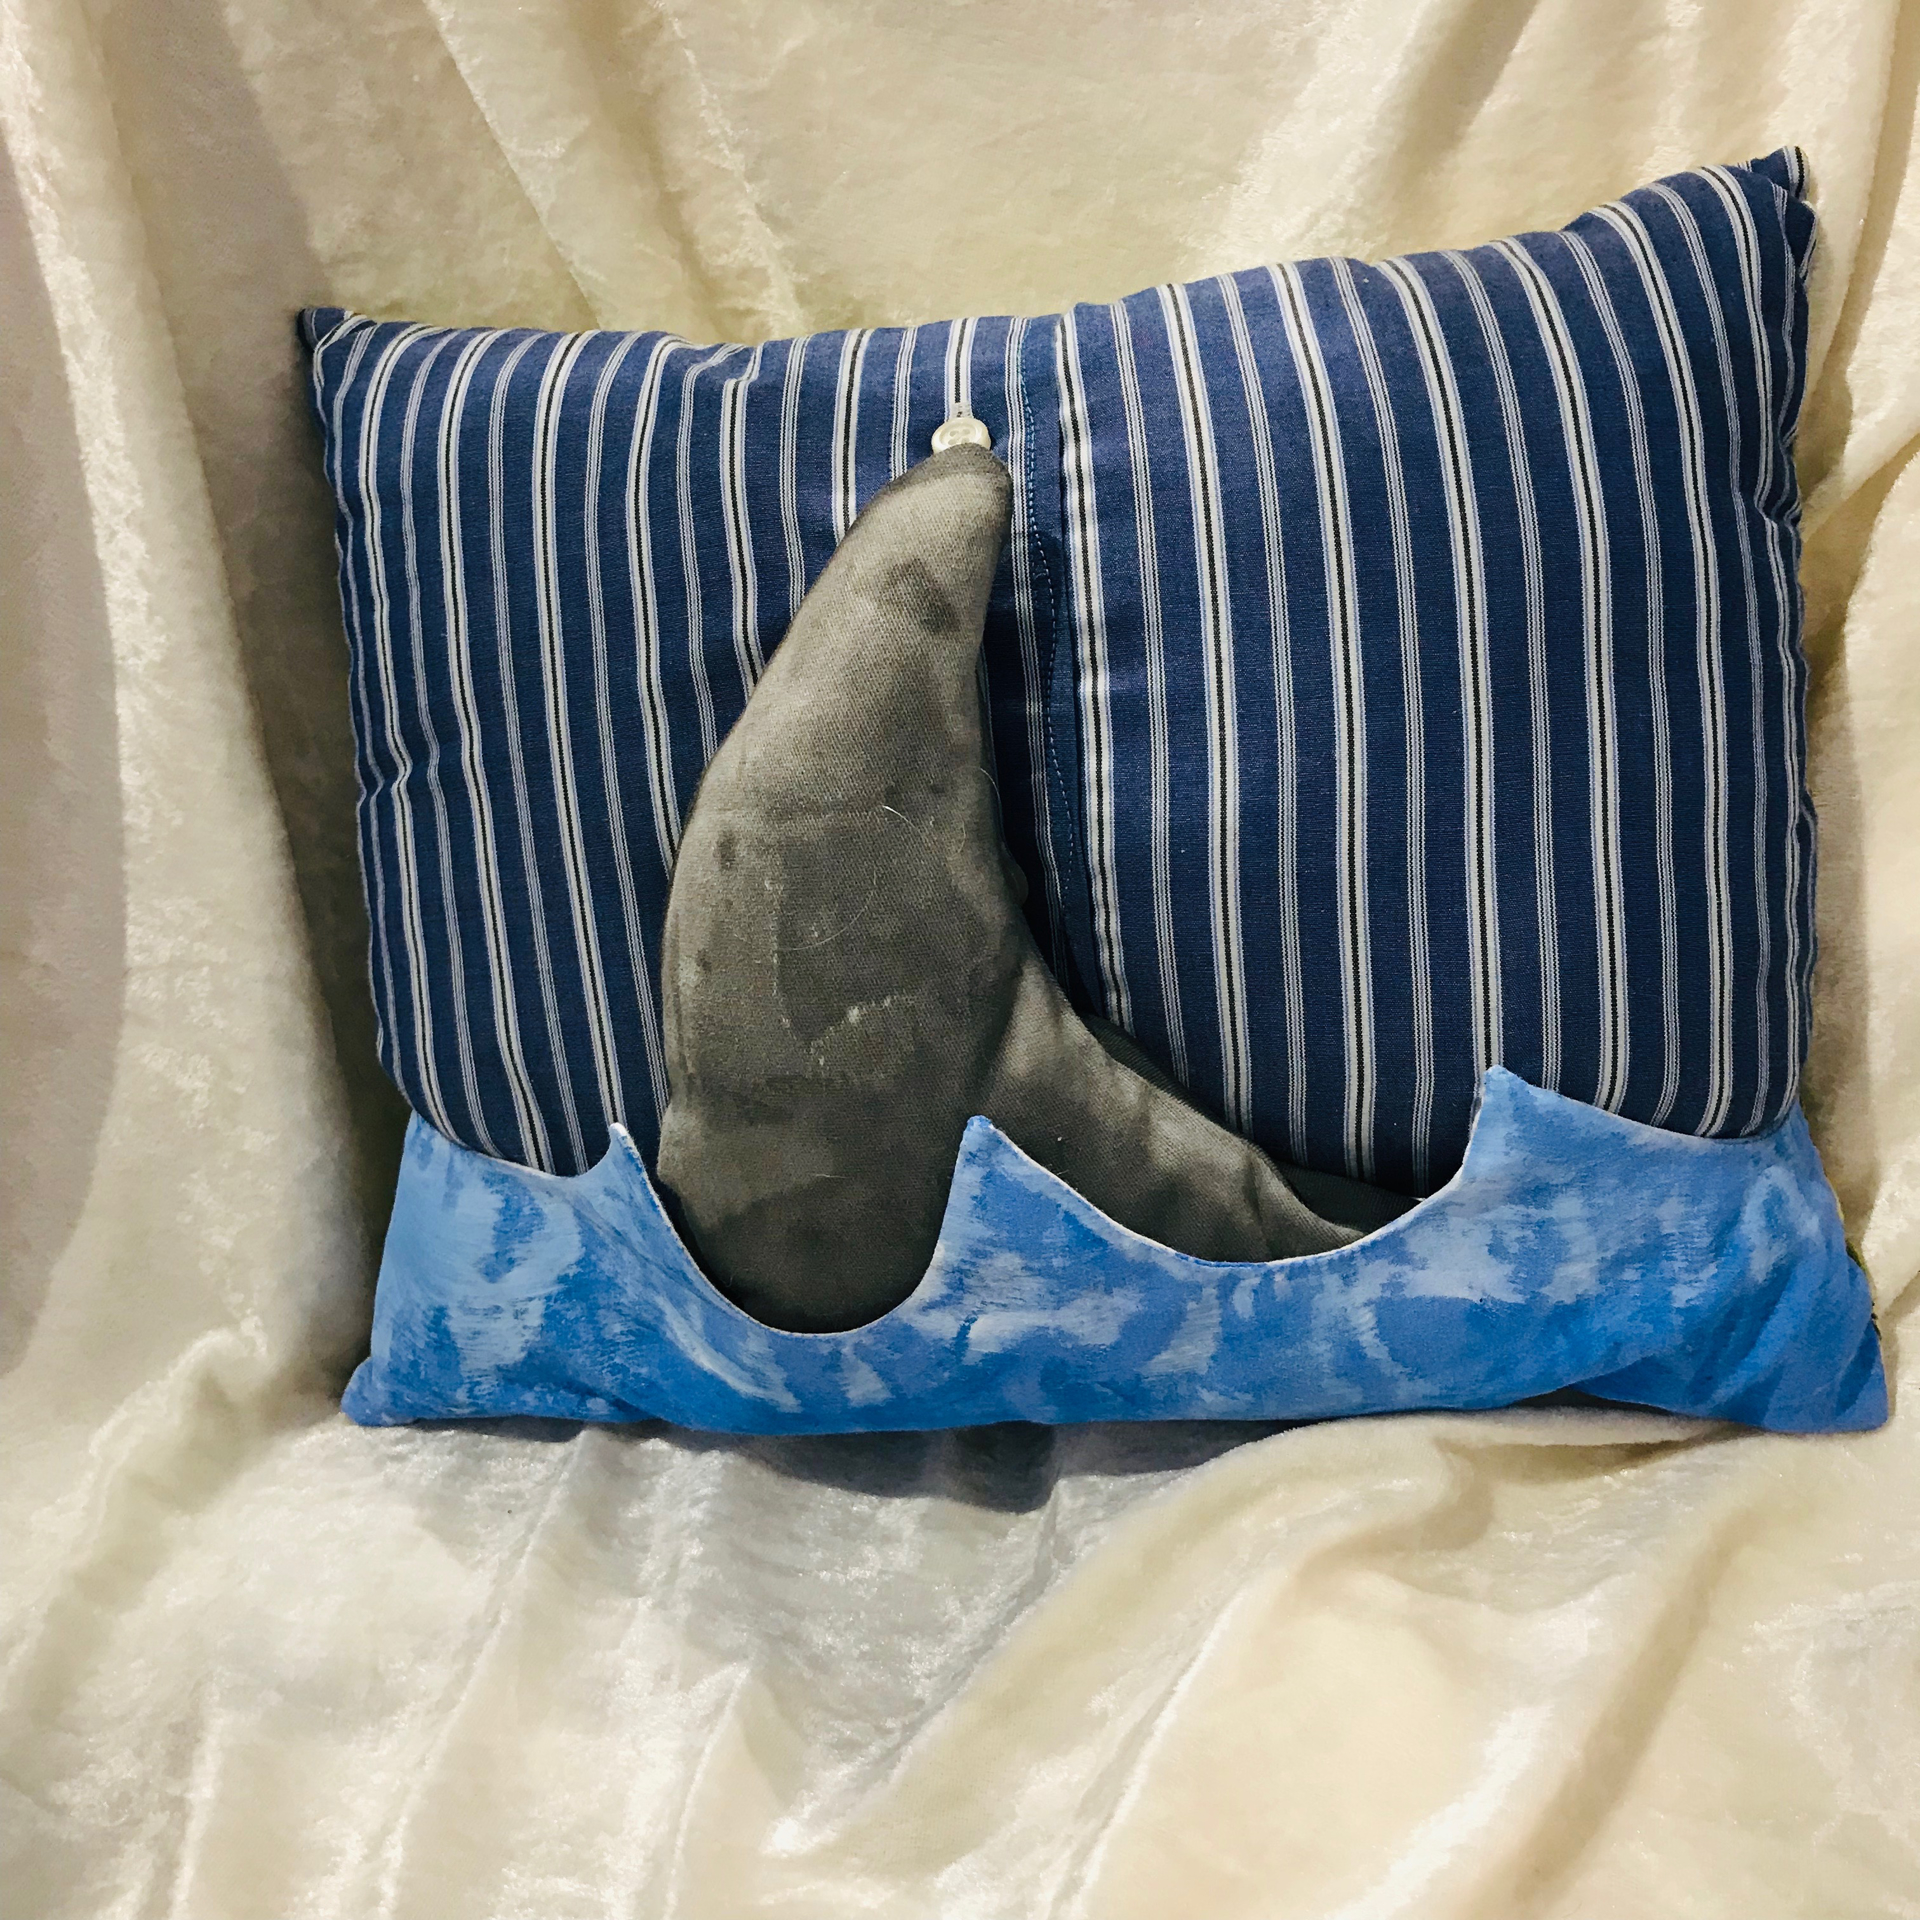 Shark fin pillow by Jeannie Rounsefell